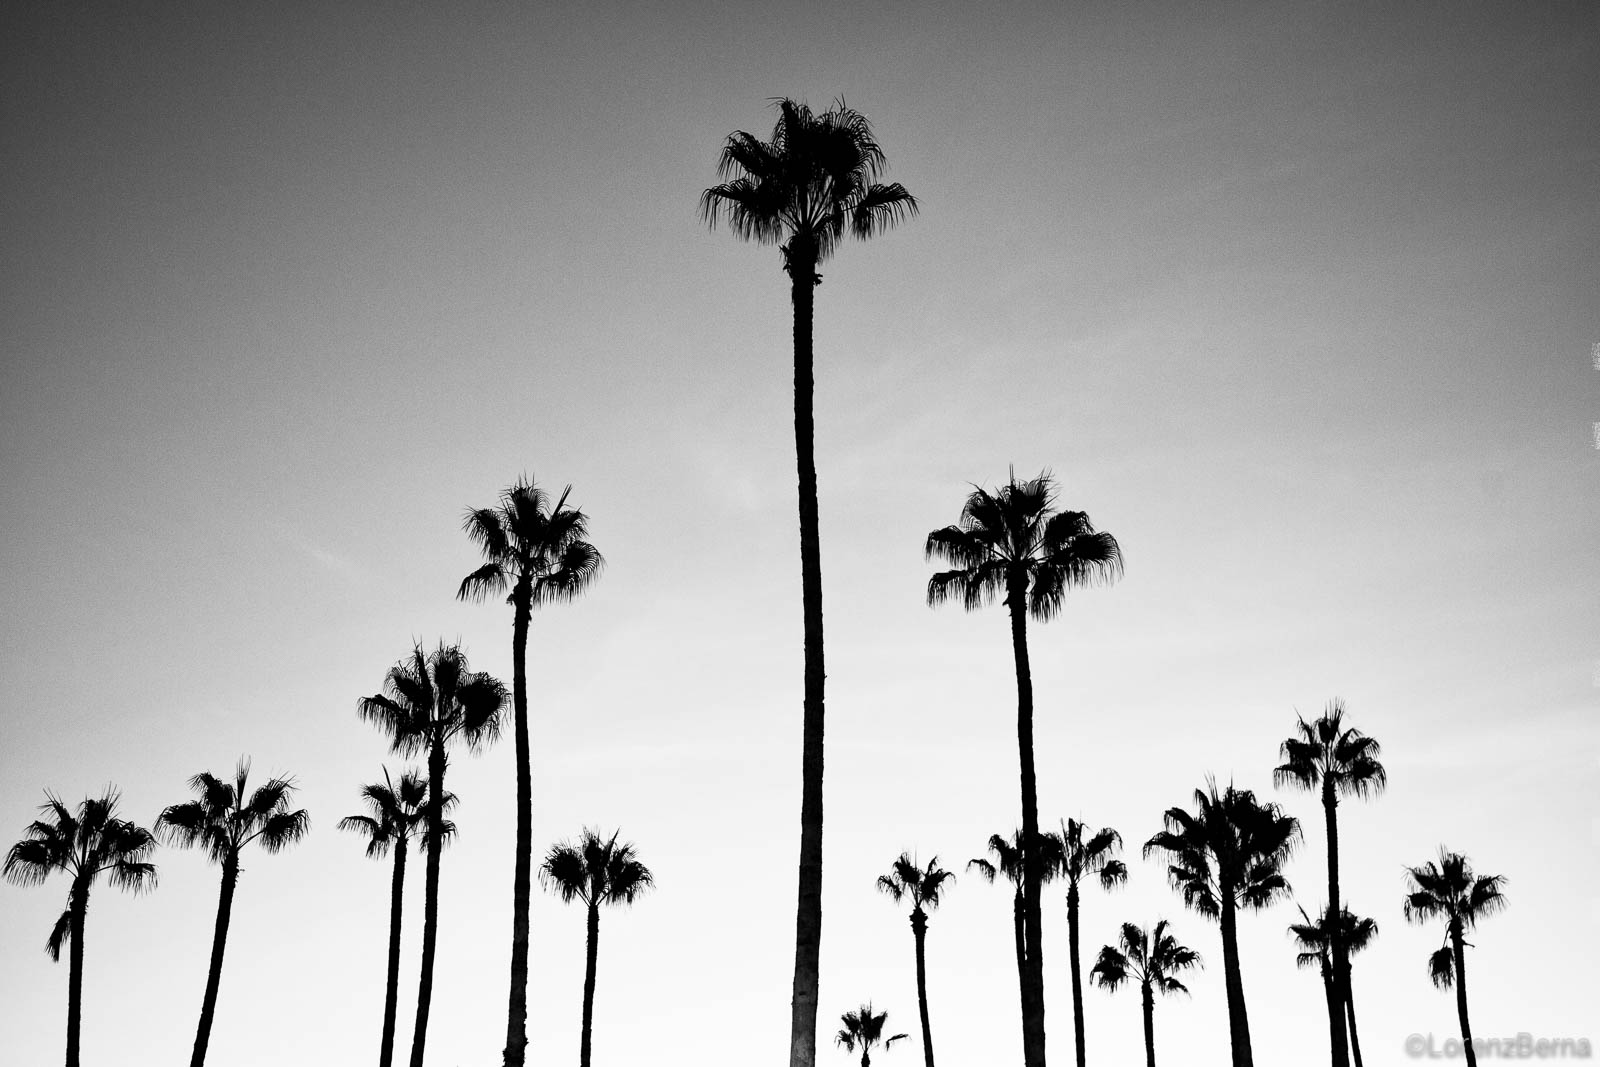 Palm trees in black and white, Morocco